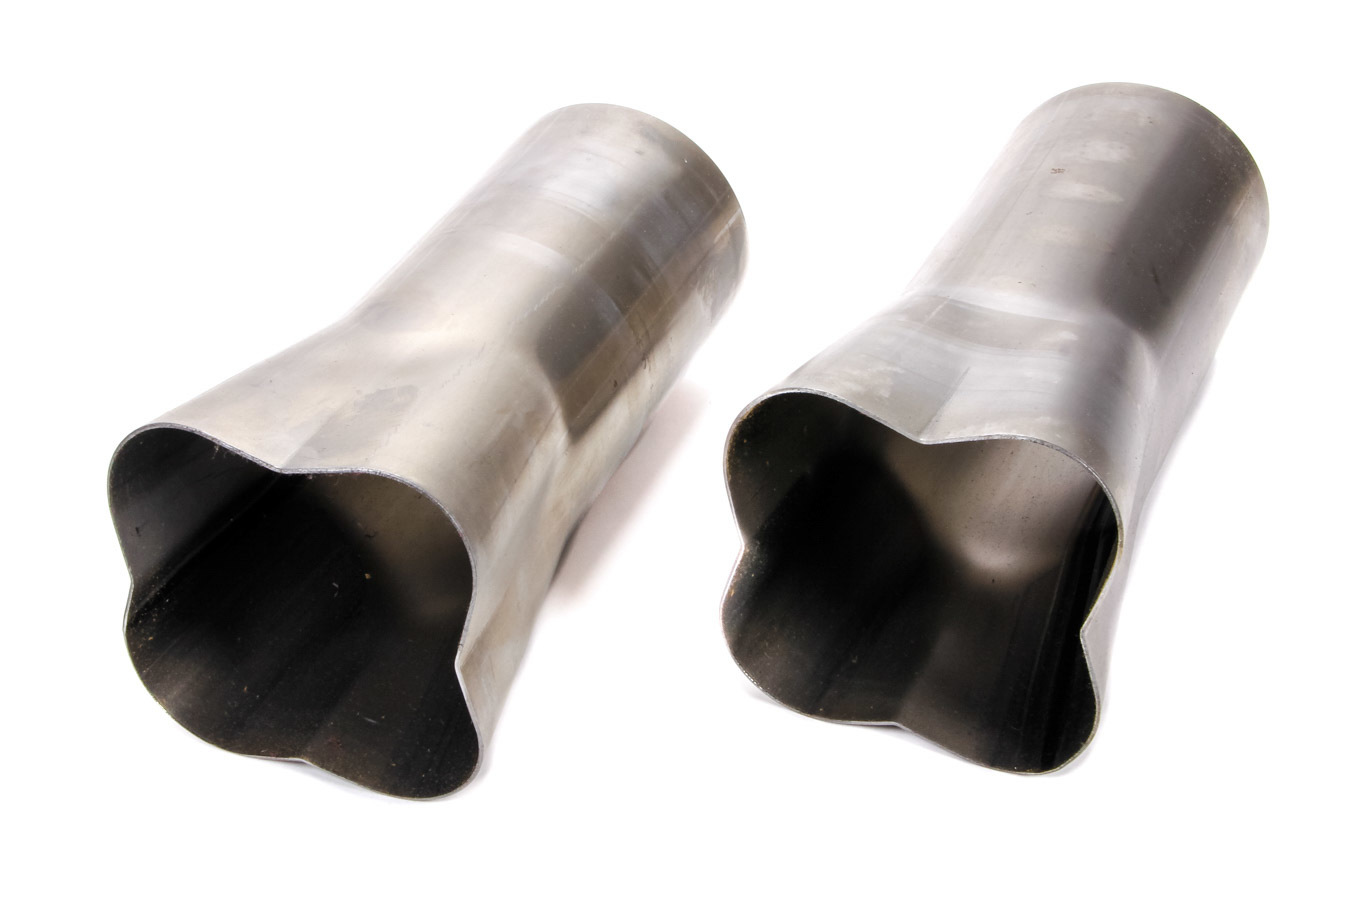 Patriot Exhaust H7690 Collector, Formed, Weld-On, 4 x 2-1/4 in Primary Tubes, 4 in Outlet, 10 in Long, Steel, Natural, Pair